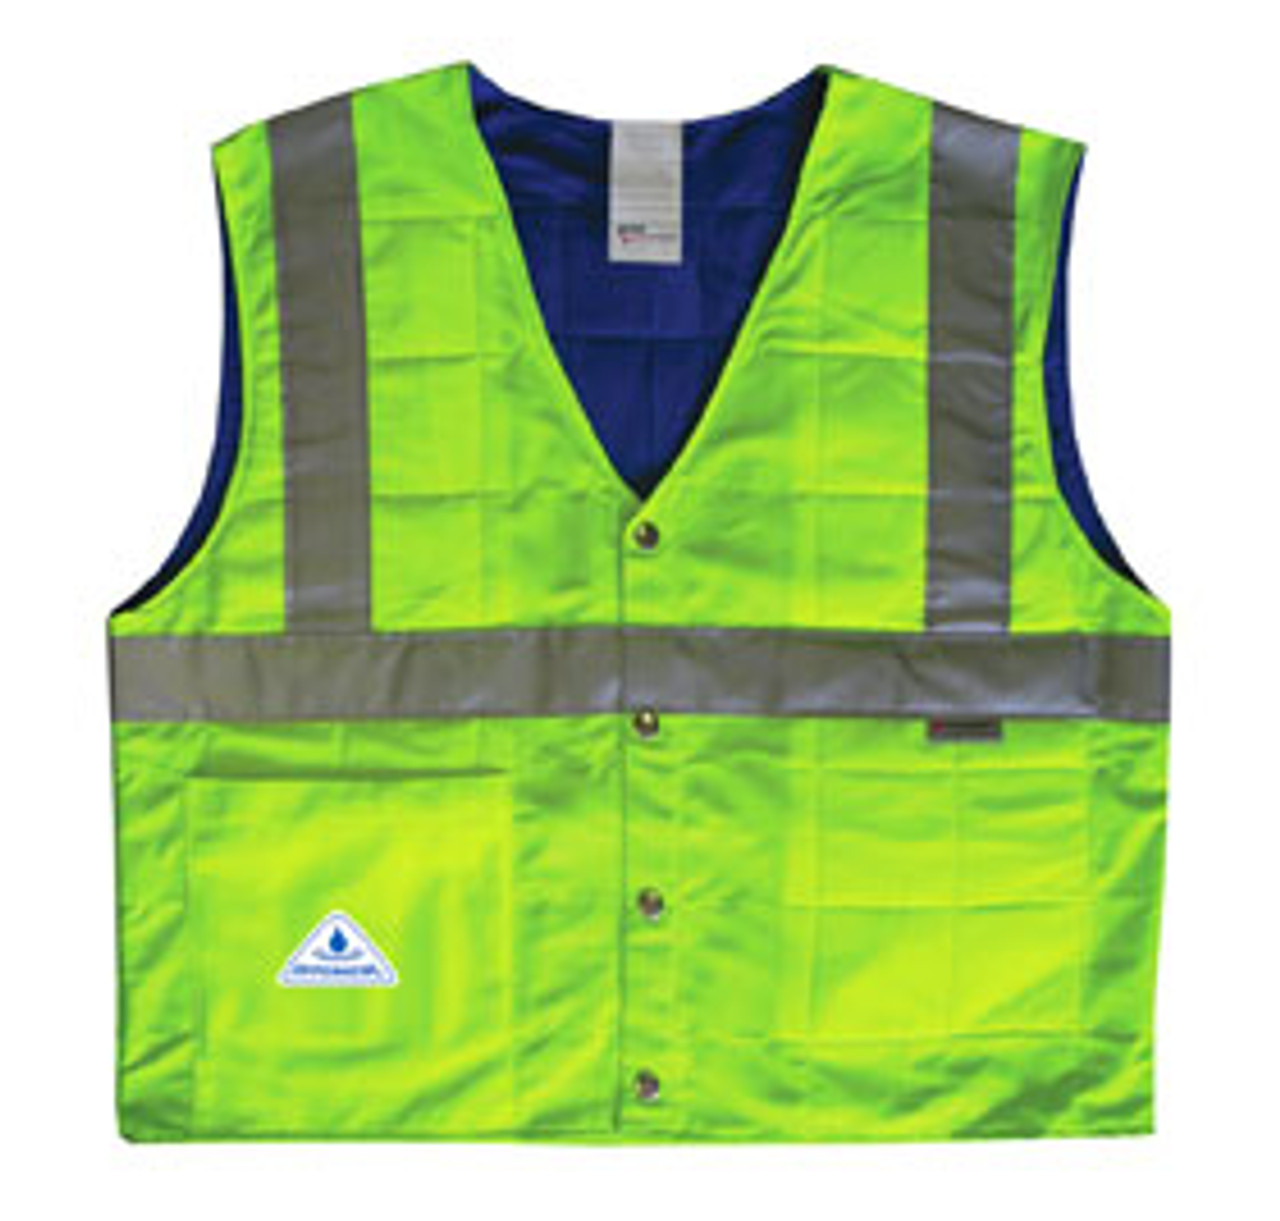 HyperKewl Cooling Traffic Safety Vest